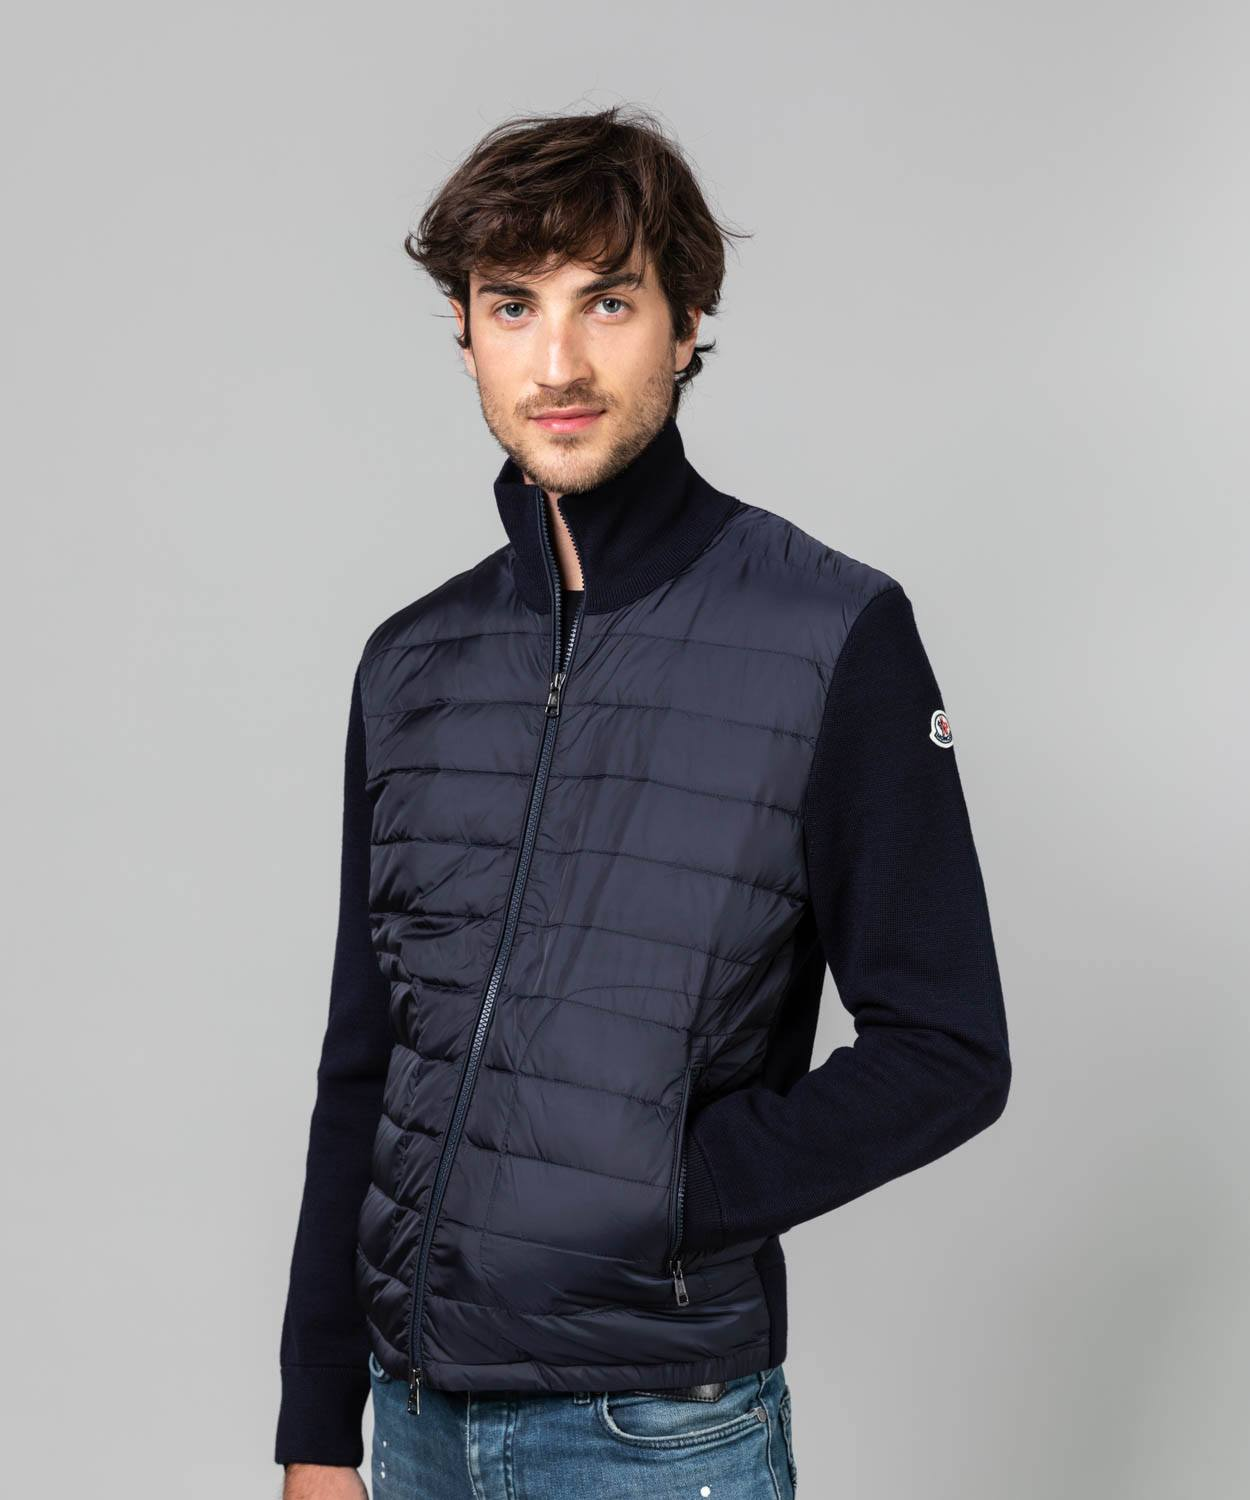 Men's Wool Knit Down Hybrid Jacket Lightweight Jackets Moncler Navy M